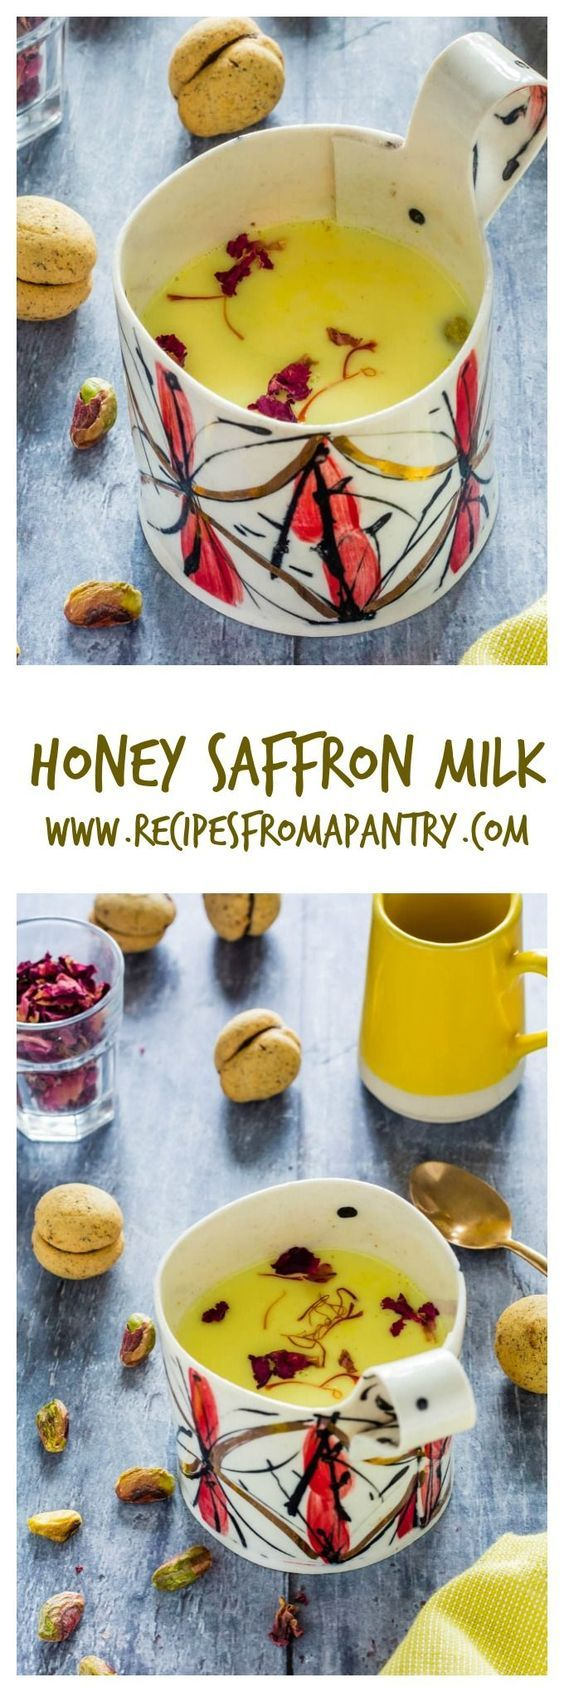 Beat the cold with this fragrant and warming *honey saffron milk*. | Recipes From A Pantry via @recipespantry